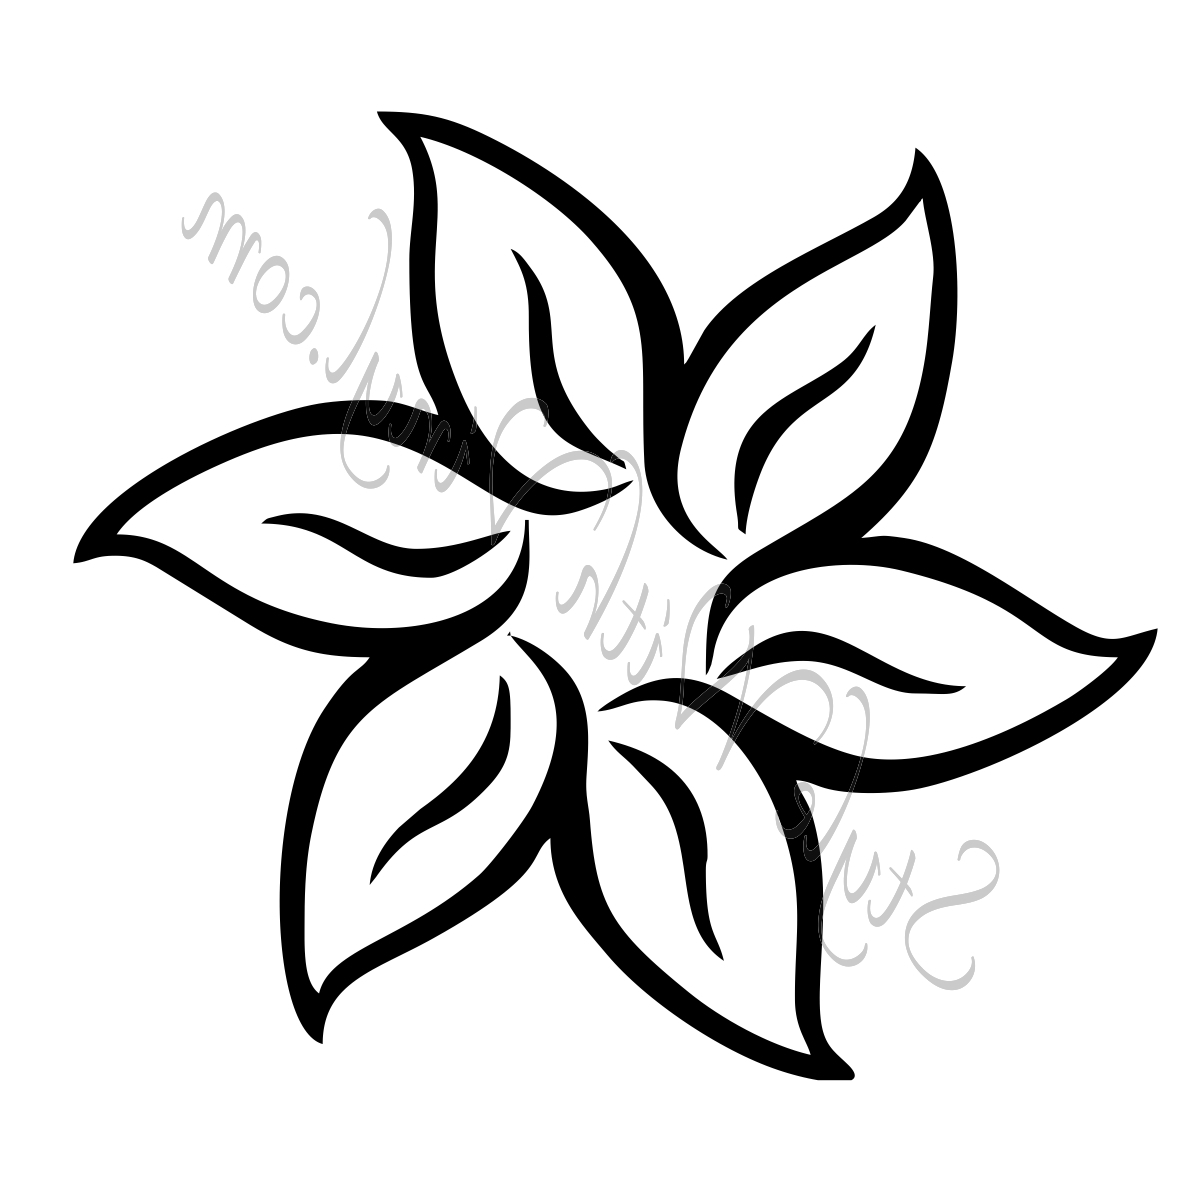 1200x1200 Cute Flower Drawings Drawn Flower Cute